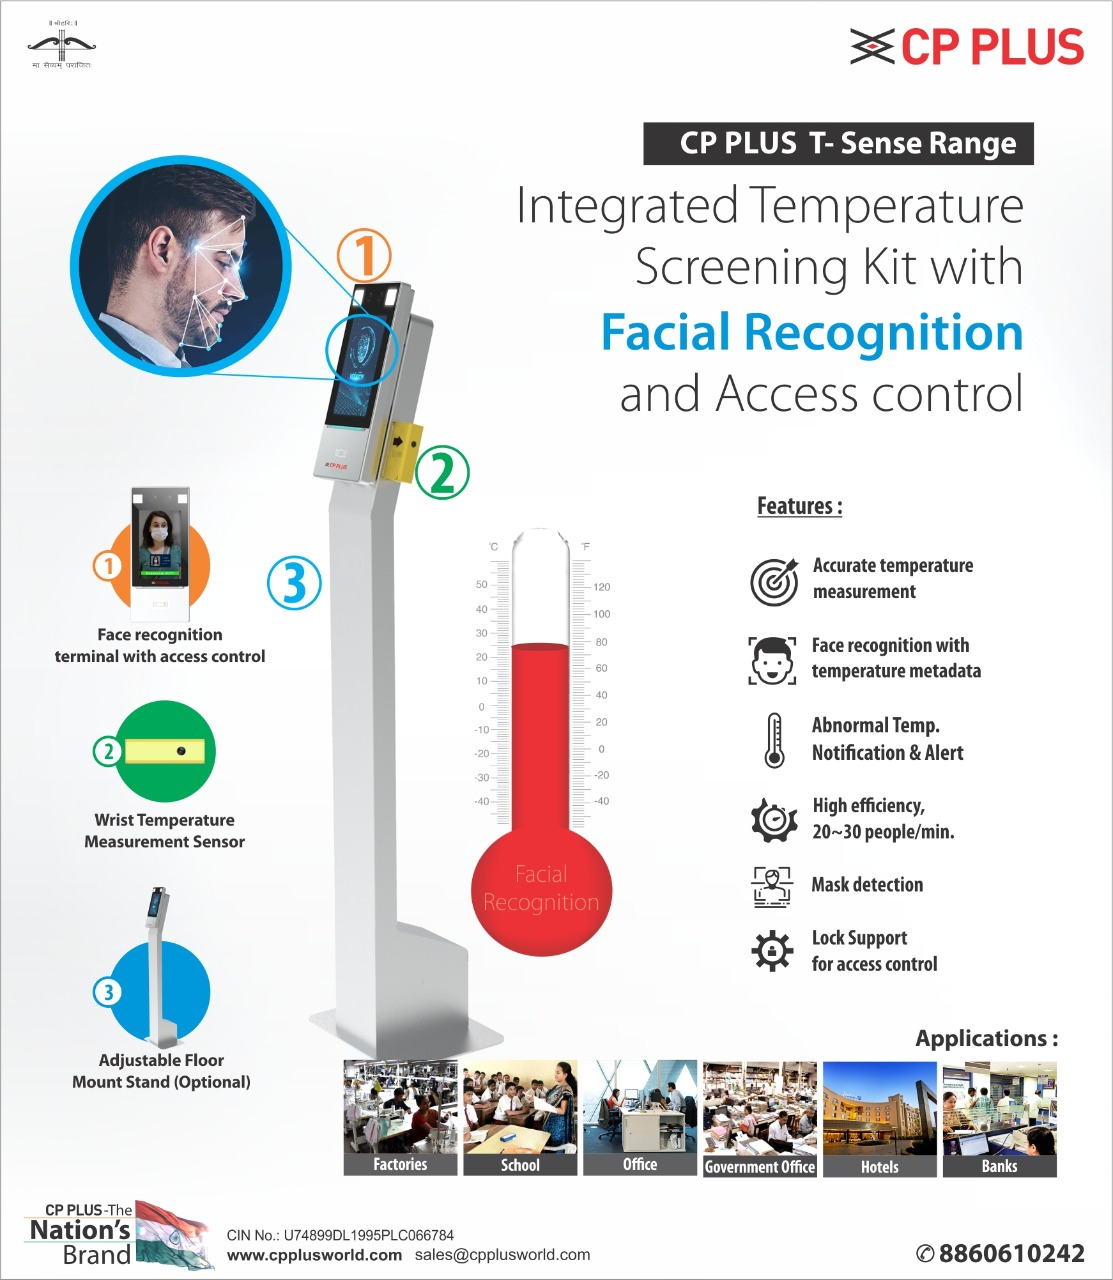 T-Sense Range Facial Recognition & Access Control Screening Kit